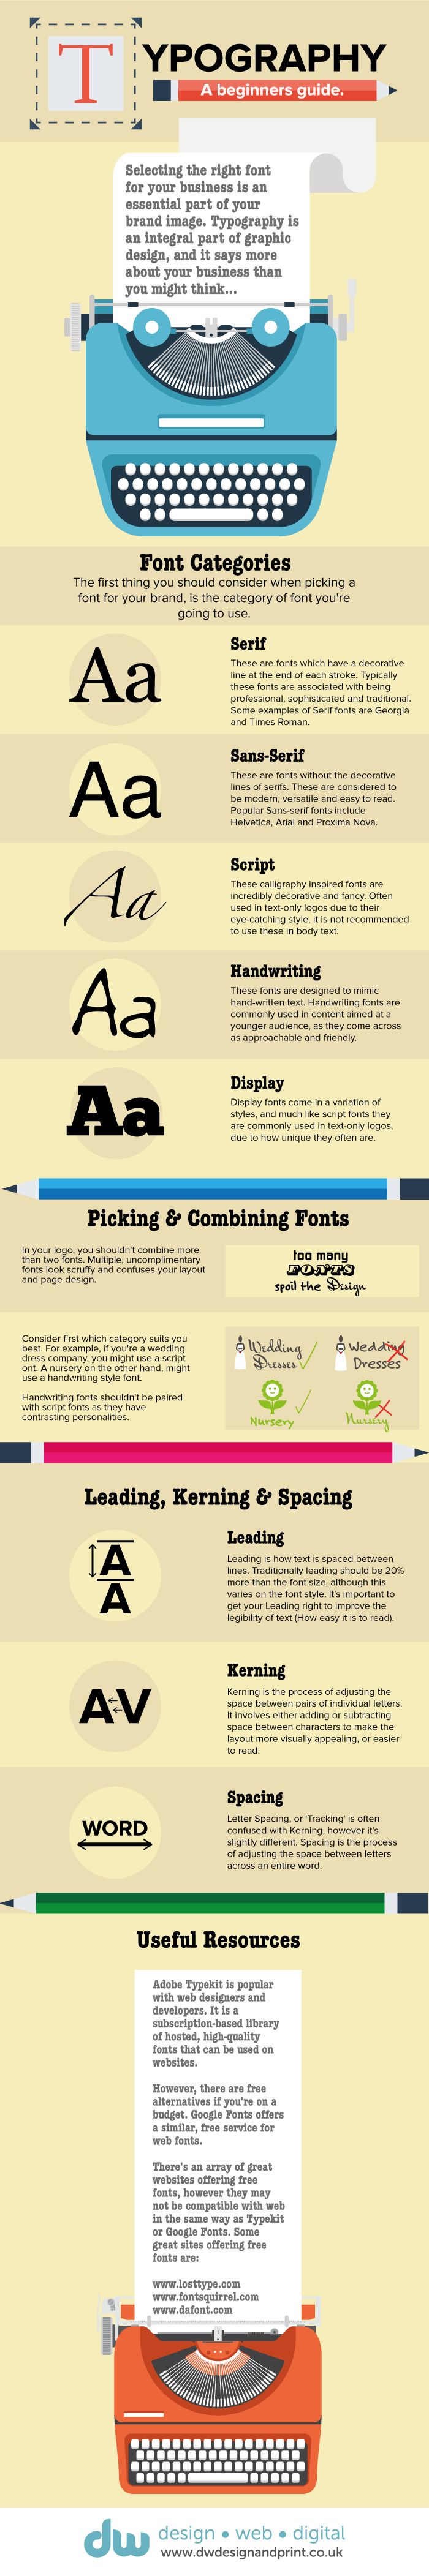 Typography: A Beginners Guide. #Infographic